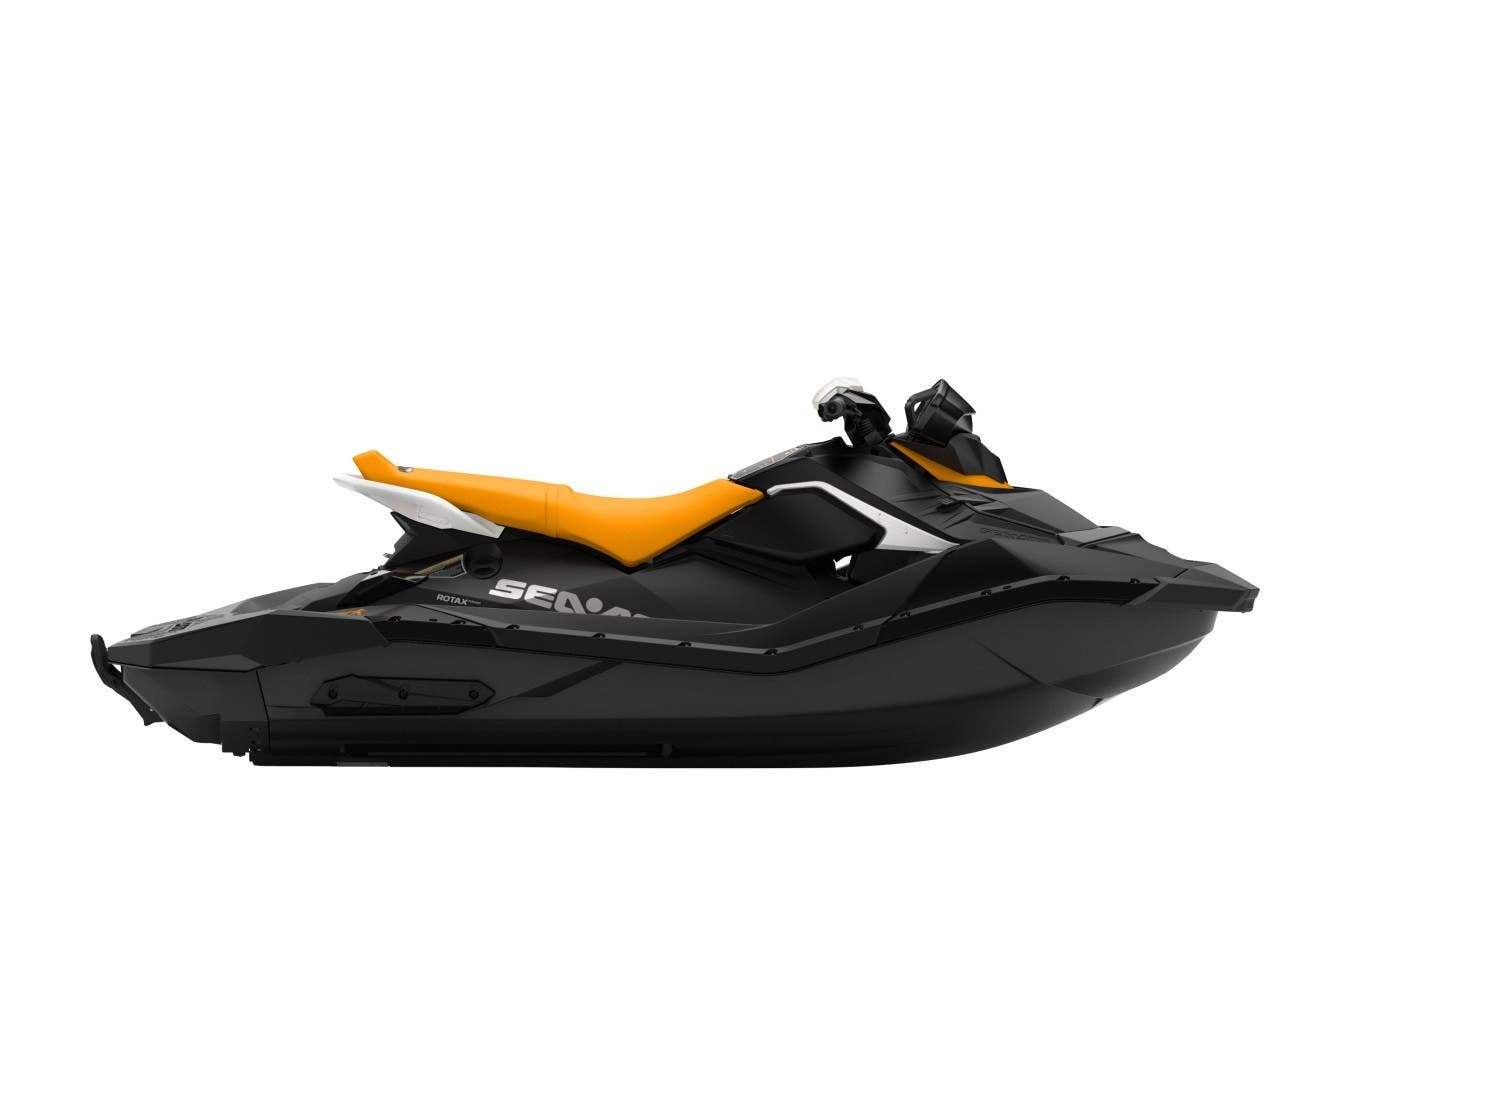 2021 Sea Doo PWC boat for sale, model of the boat is Spark 3-Up iBR CONV & Image # 4 of 4